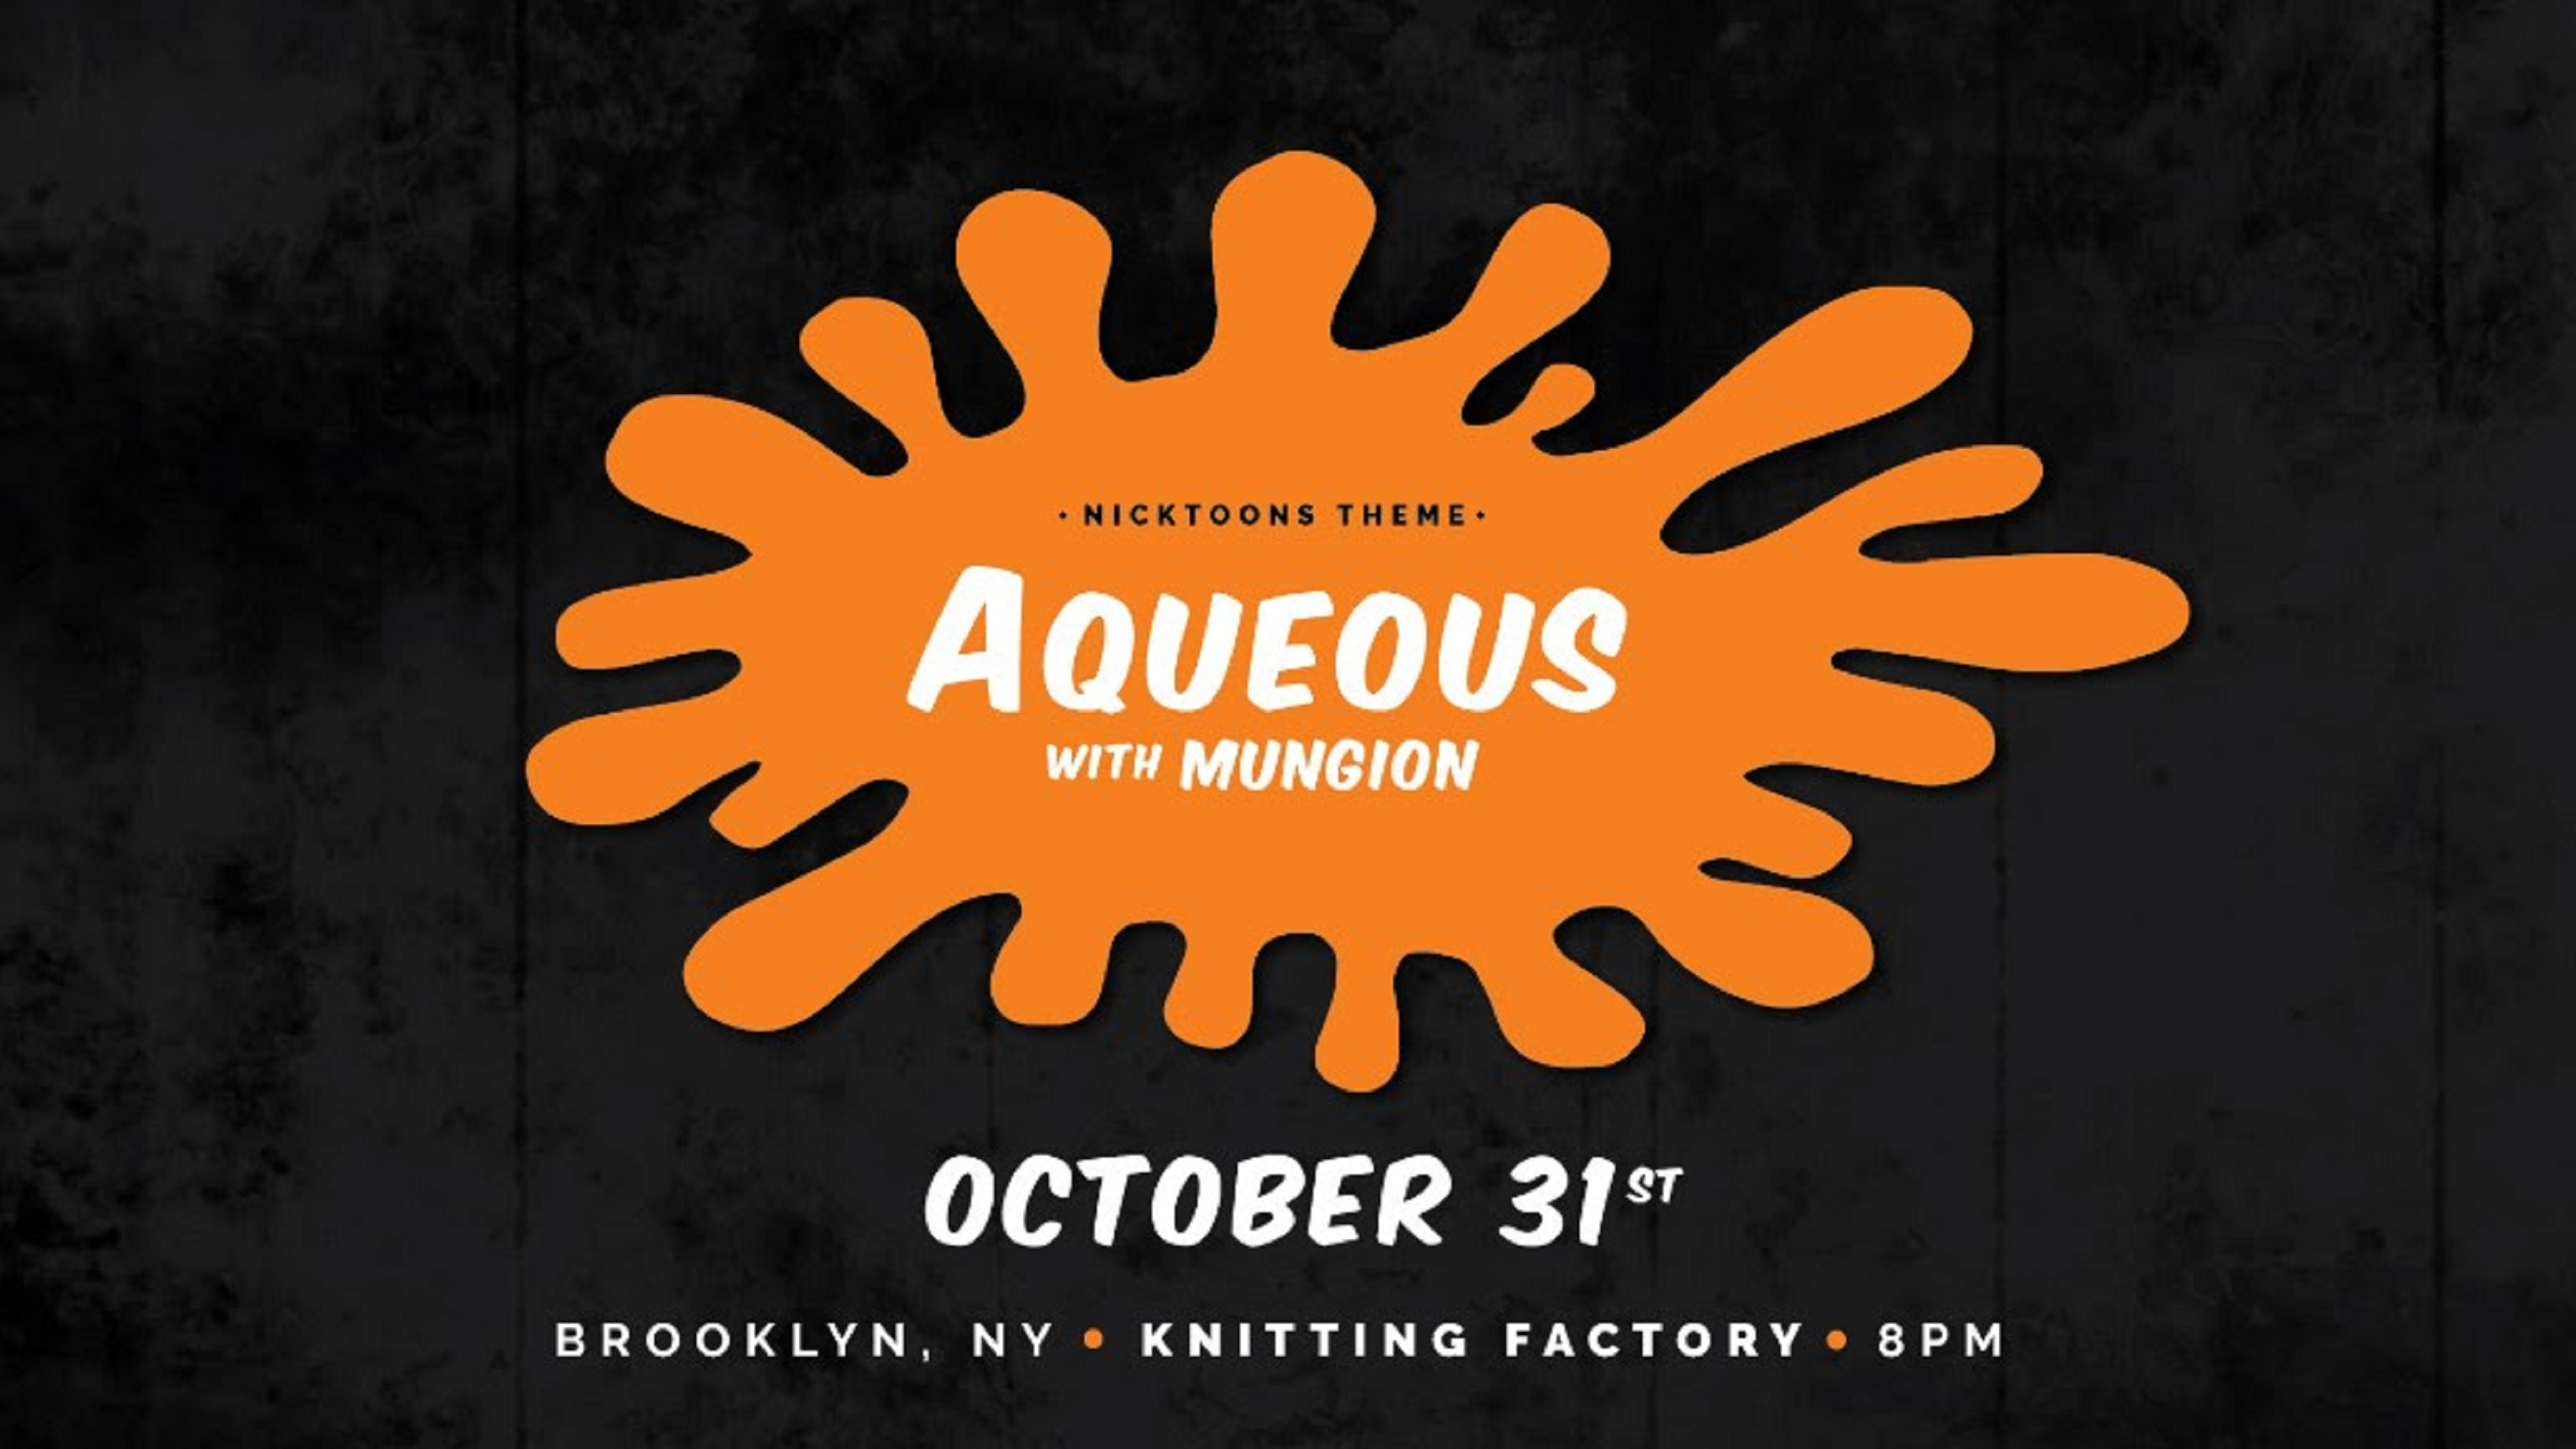 Aqueous Shares Halloween Theme For Brooklyn Throwdown With Mungion